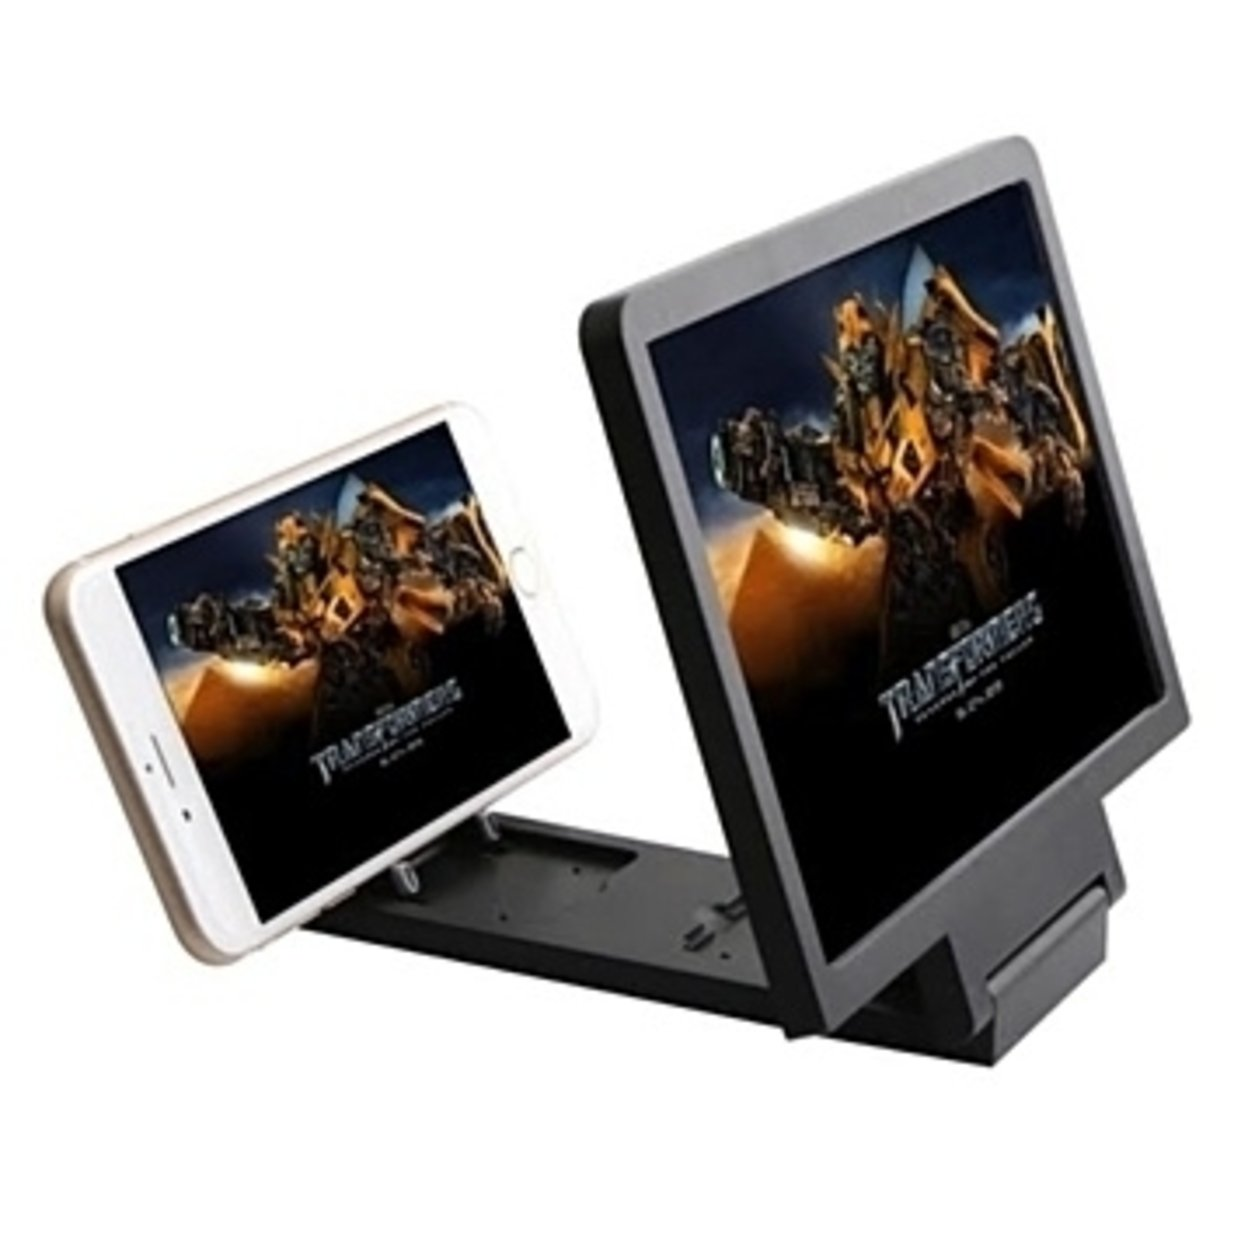 3D Screen Enlarge,Magnifier And Viewer For Your Smart Phone 5a1cd50c0bda71393a0cf706